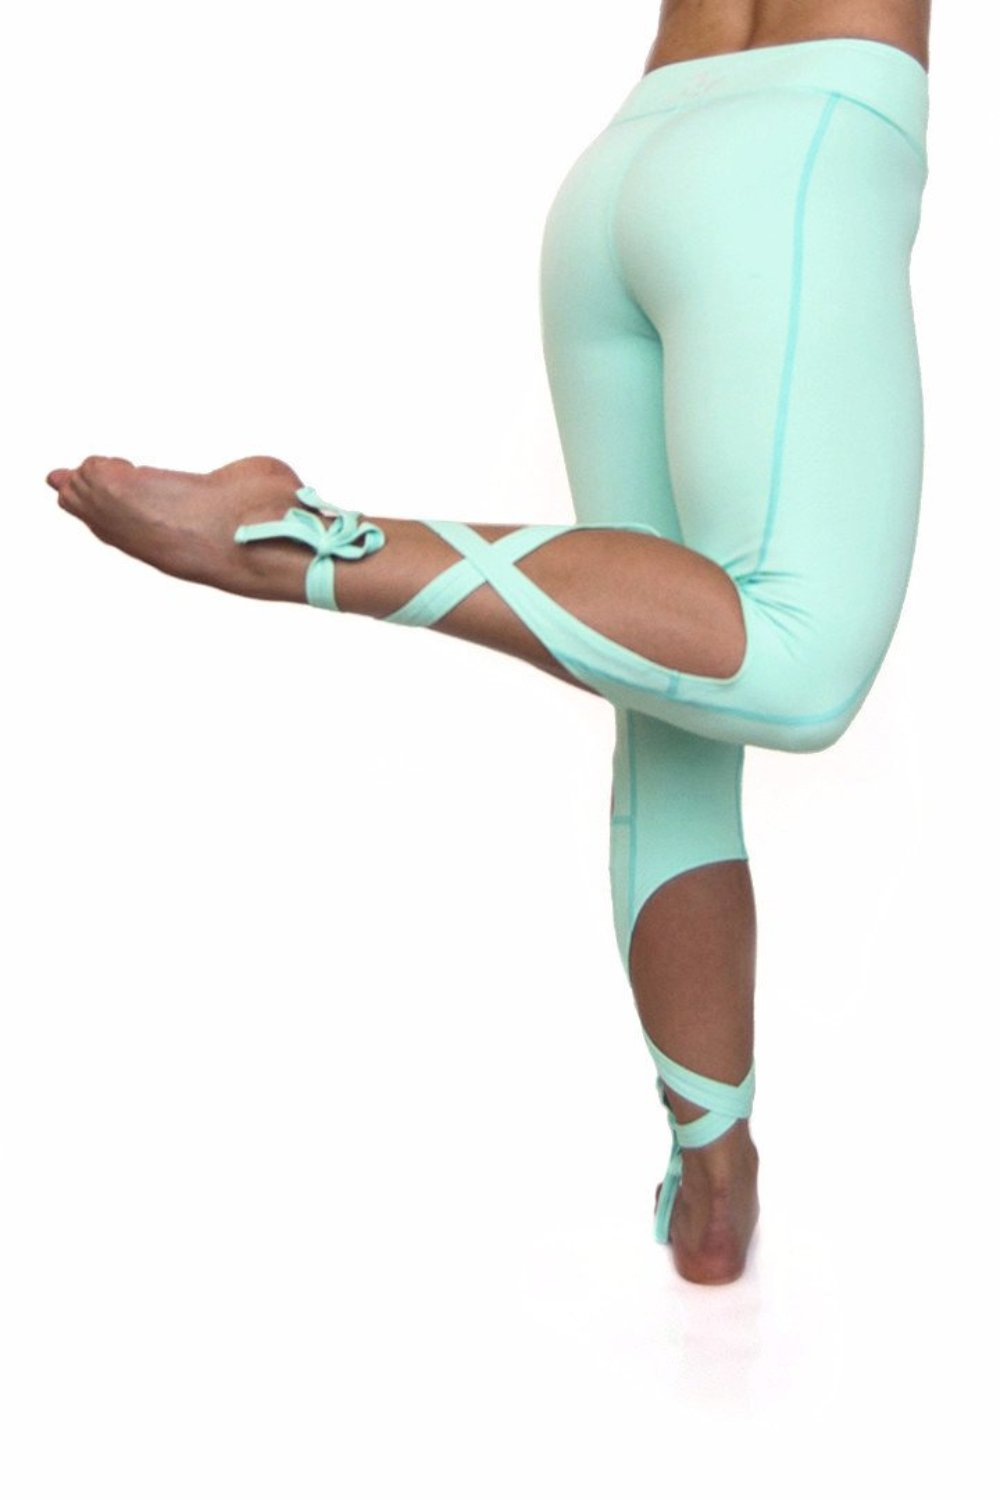 Mint Green unique leg wrap dancer style yoga leggings from Flexi Lexi.  Available from Uniquely Yoga. Back View